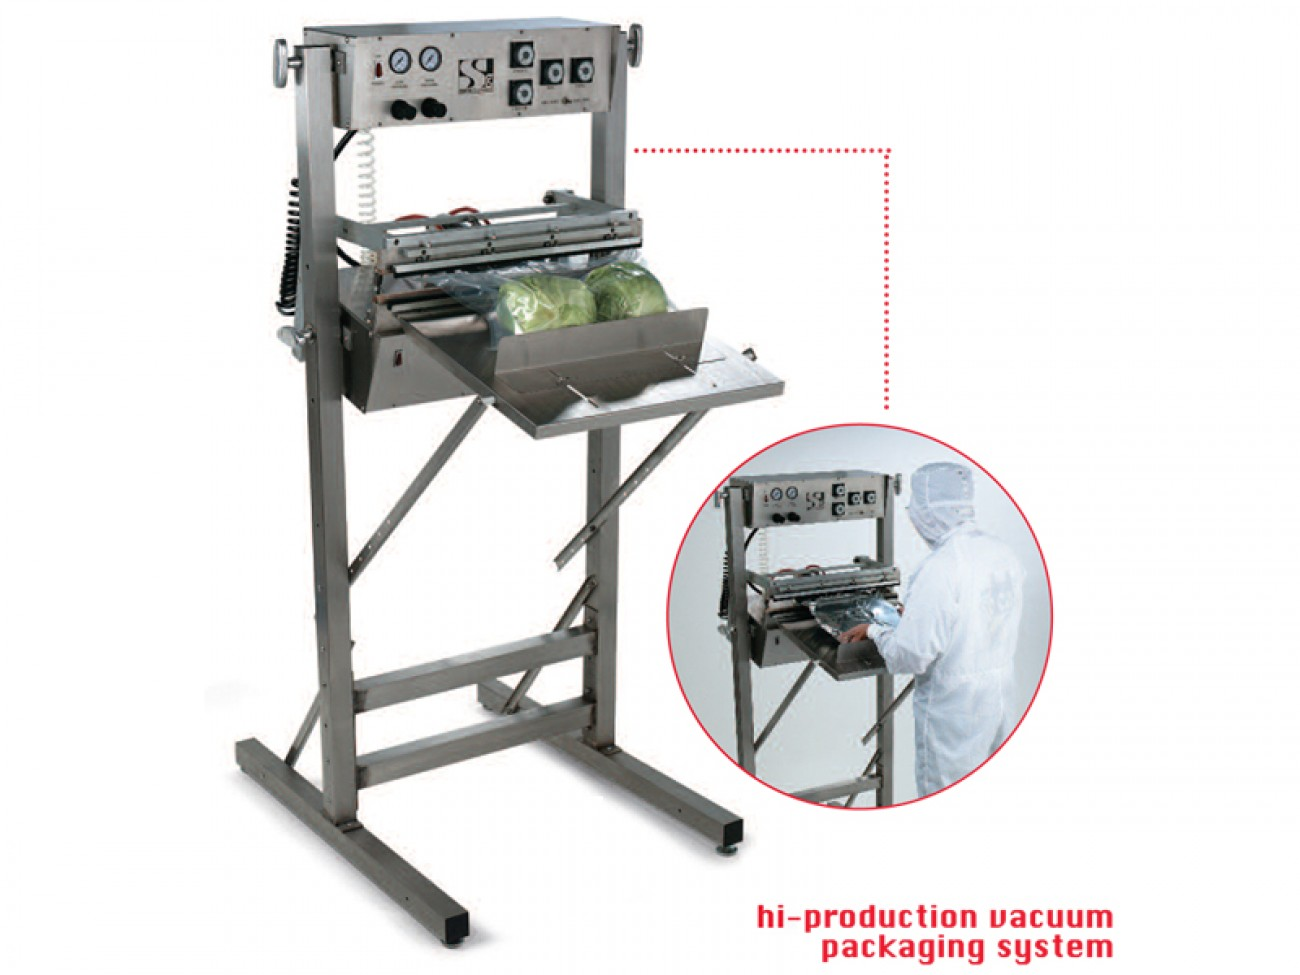 Custom Pak Hi-production Vacuum Packaging Machine